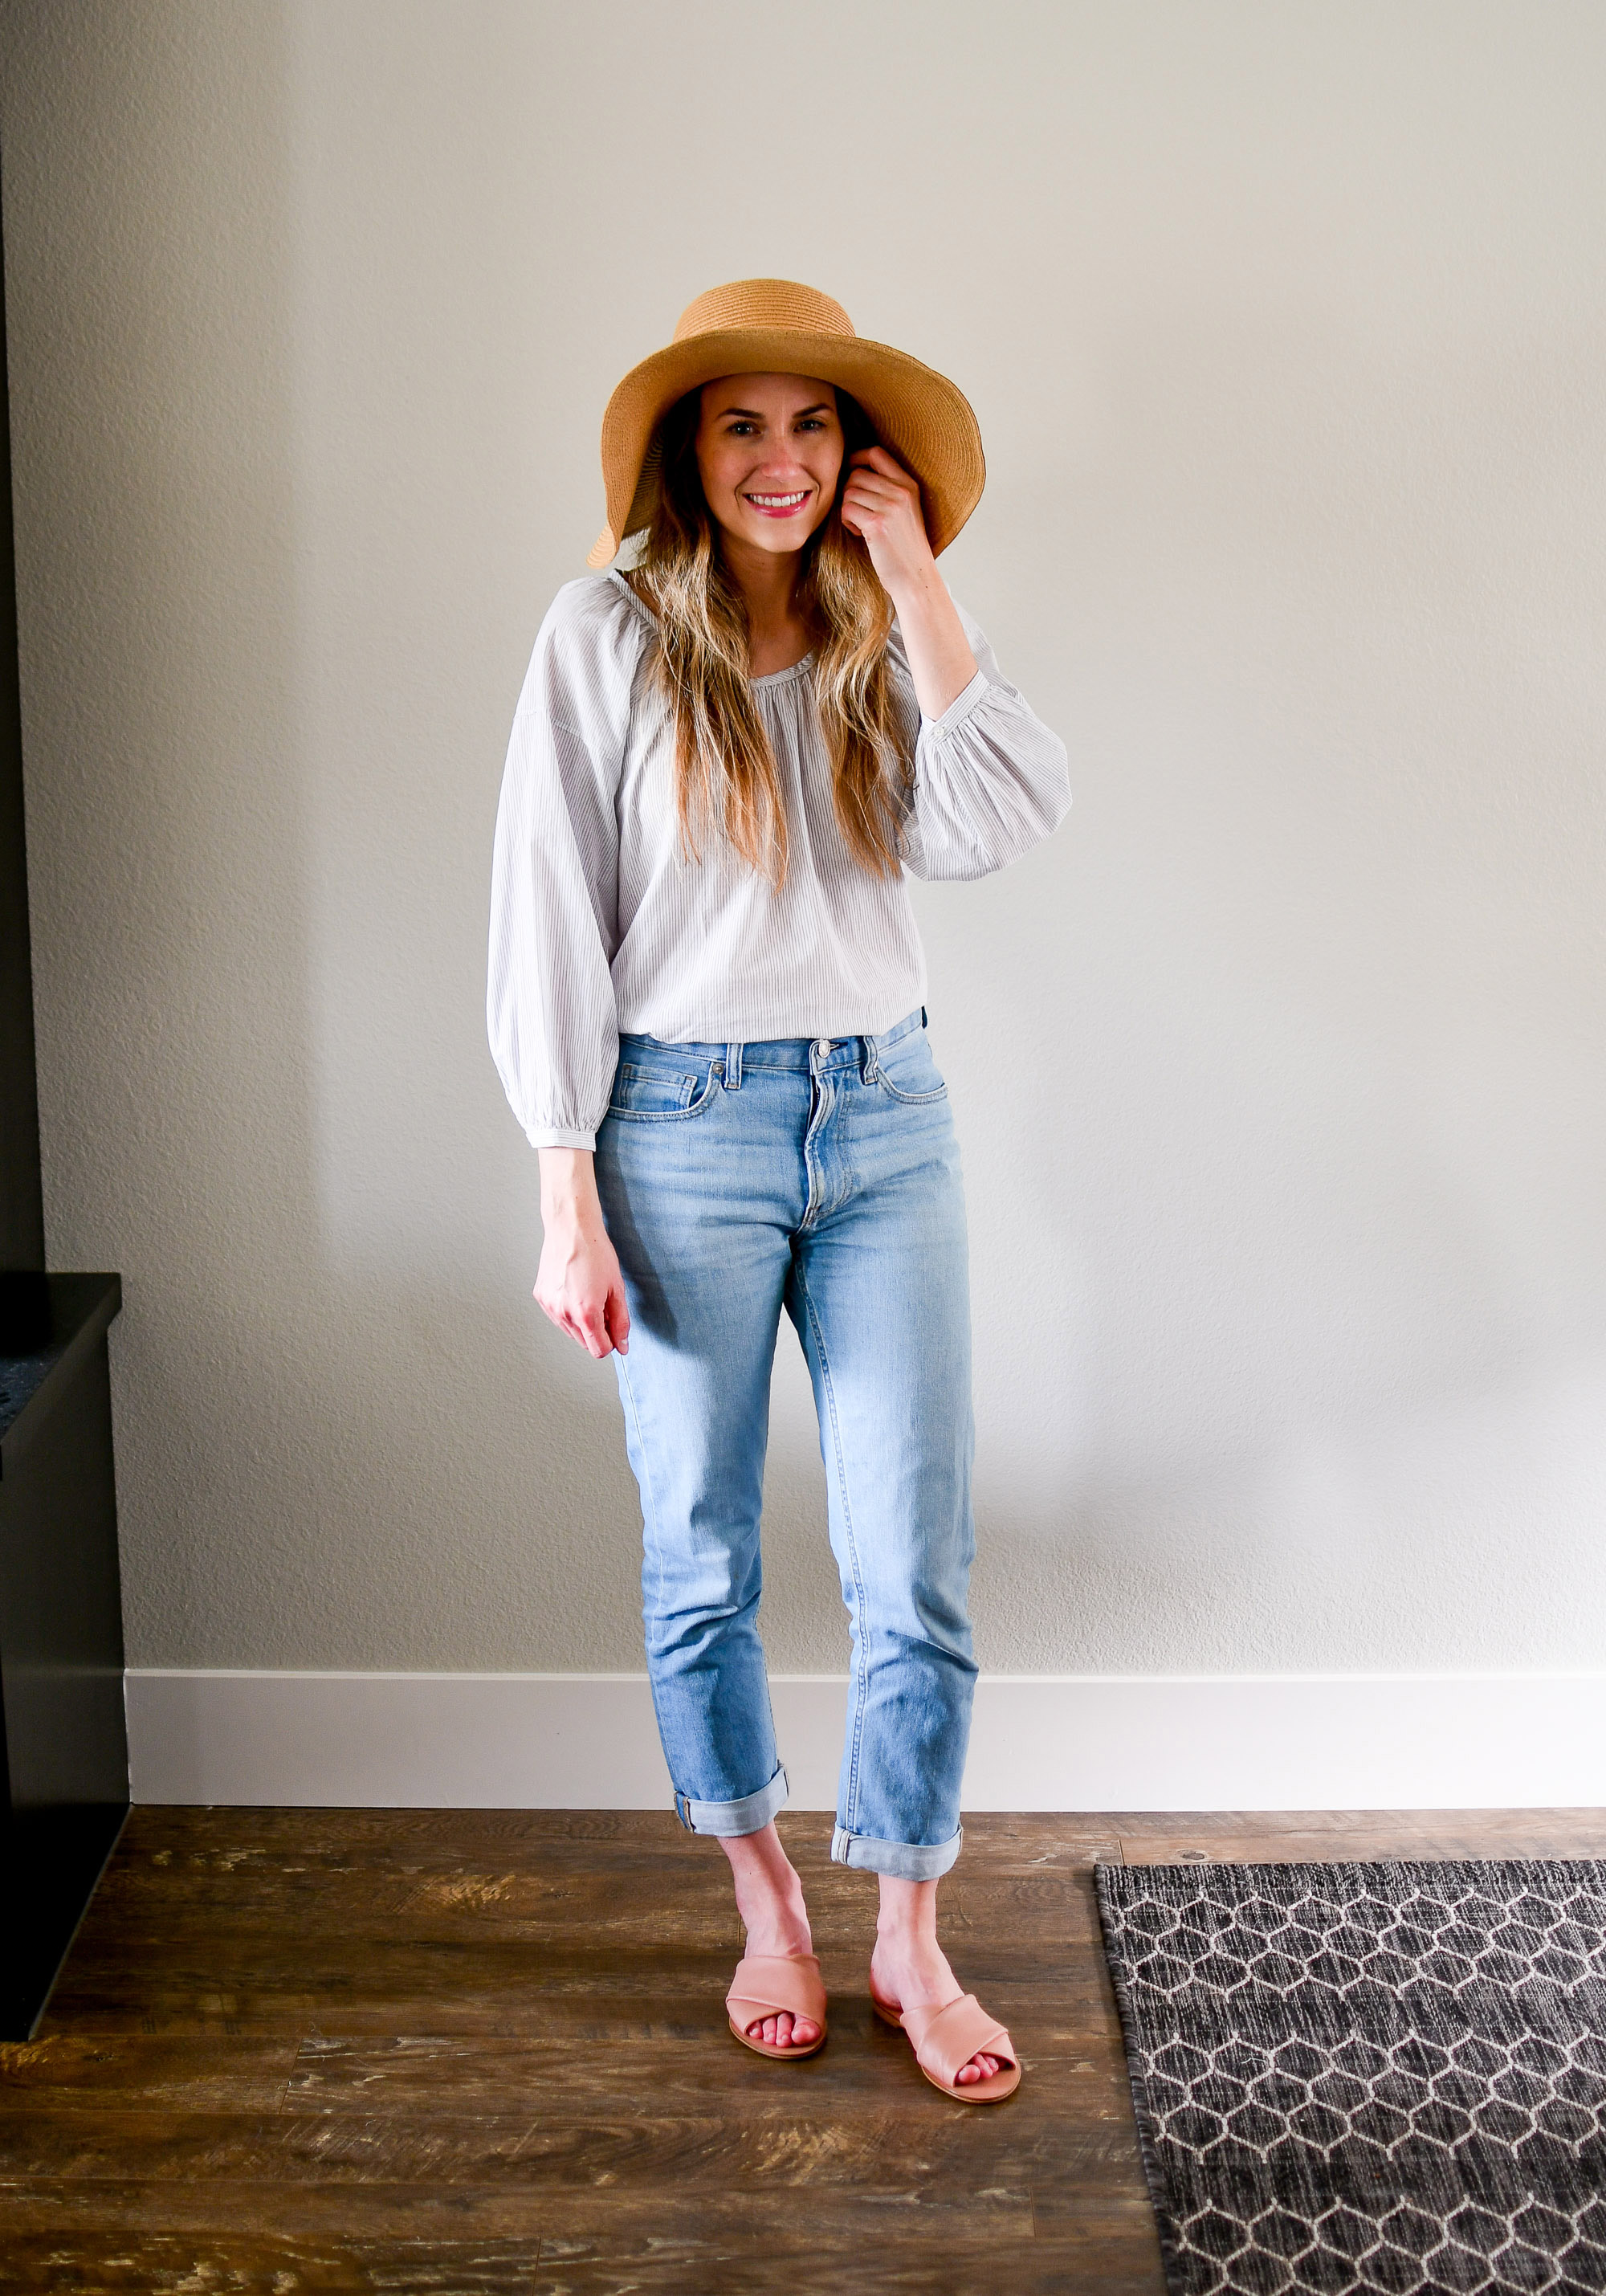 Casual Everlane outfit with air ruched blouse, modern boyfriend jeans, day crossover sandal — Cotton Cashmere Cat Hair